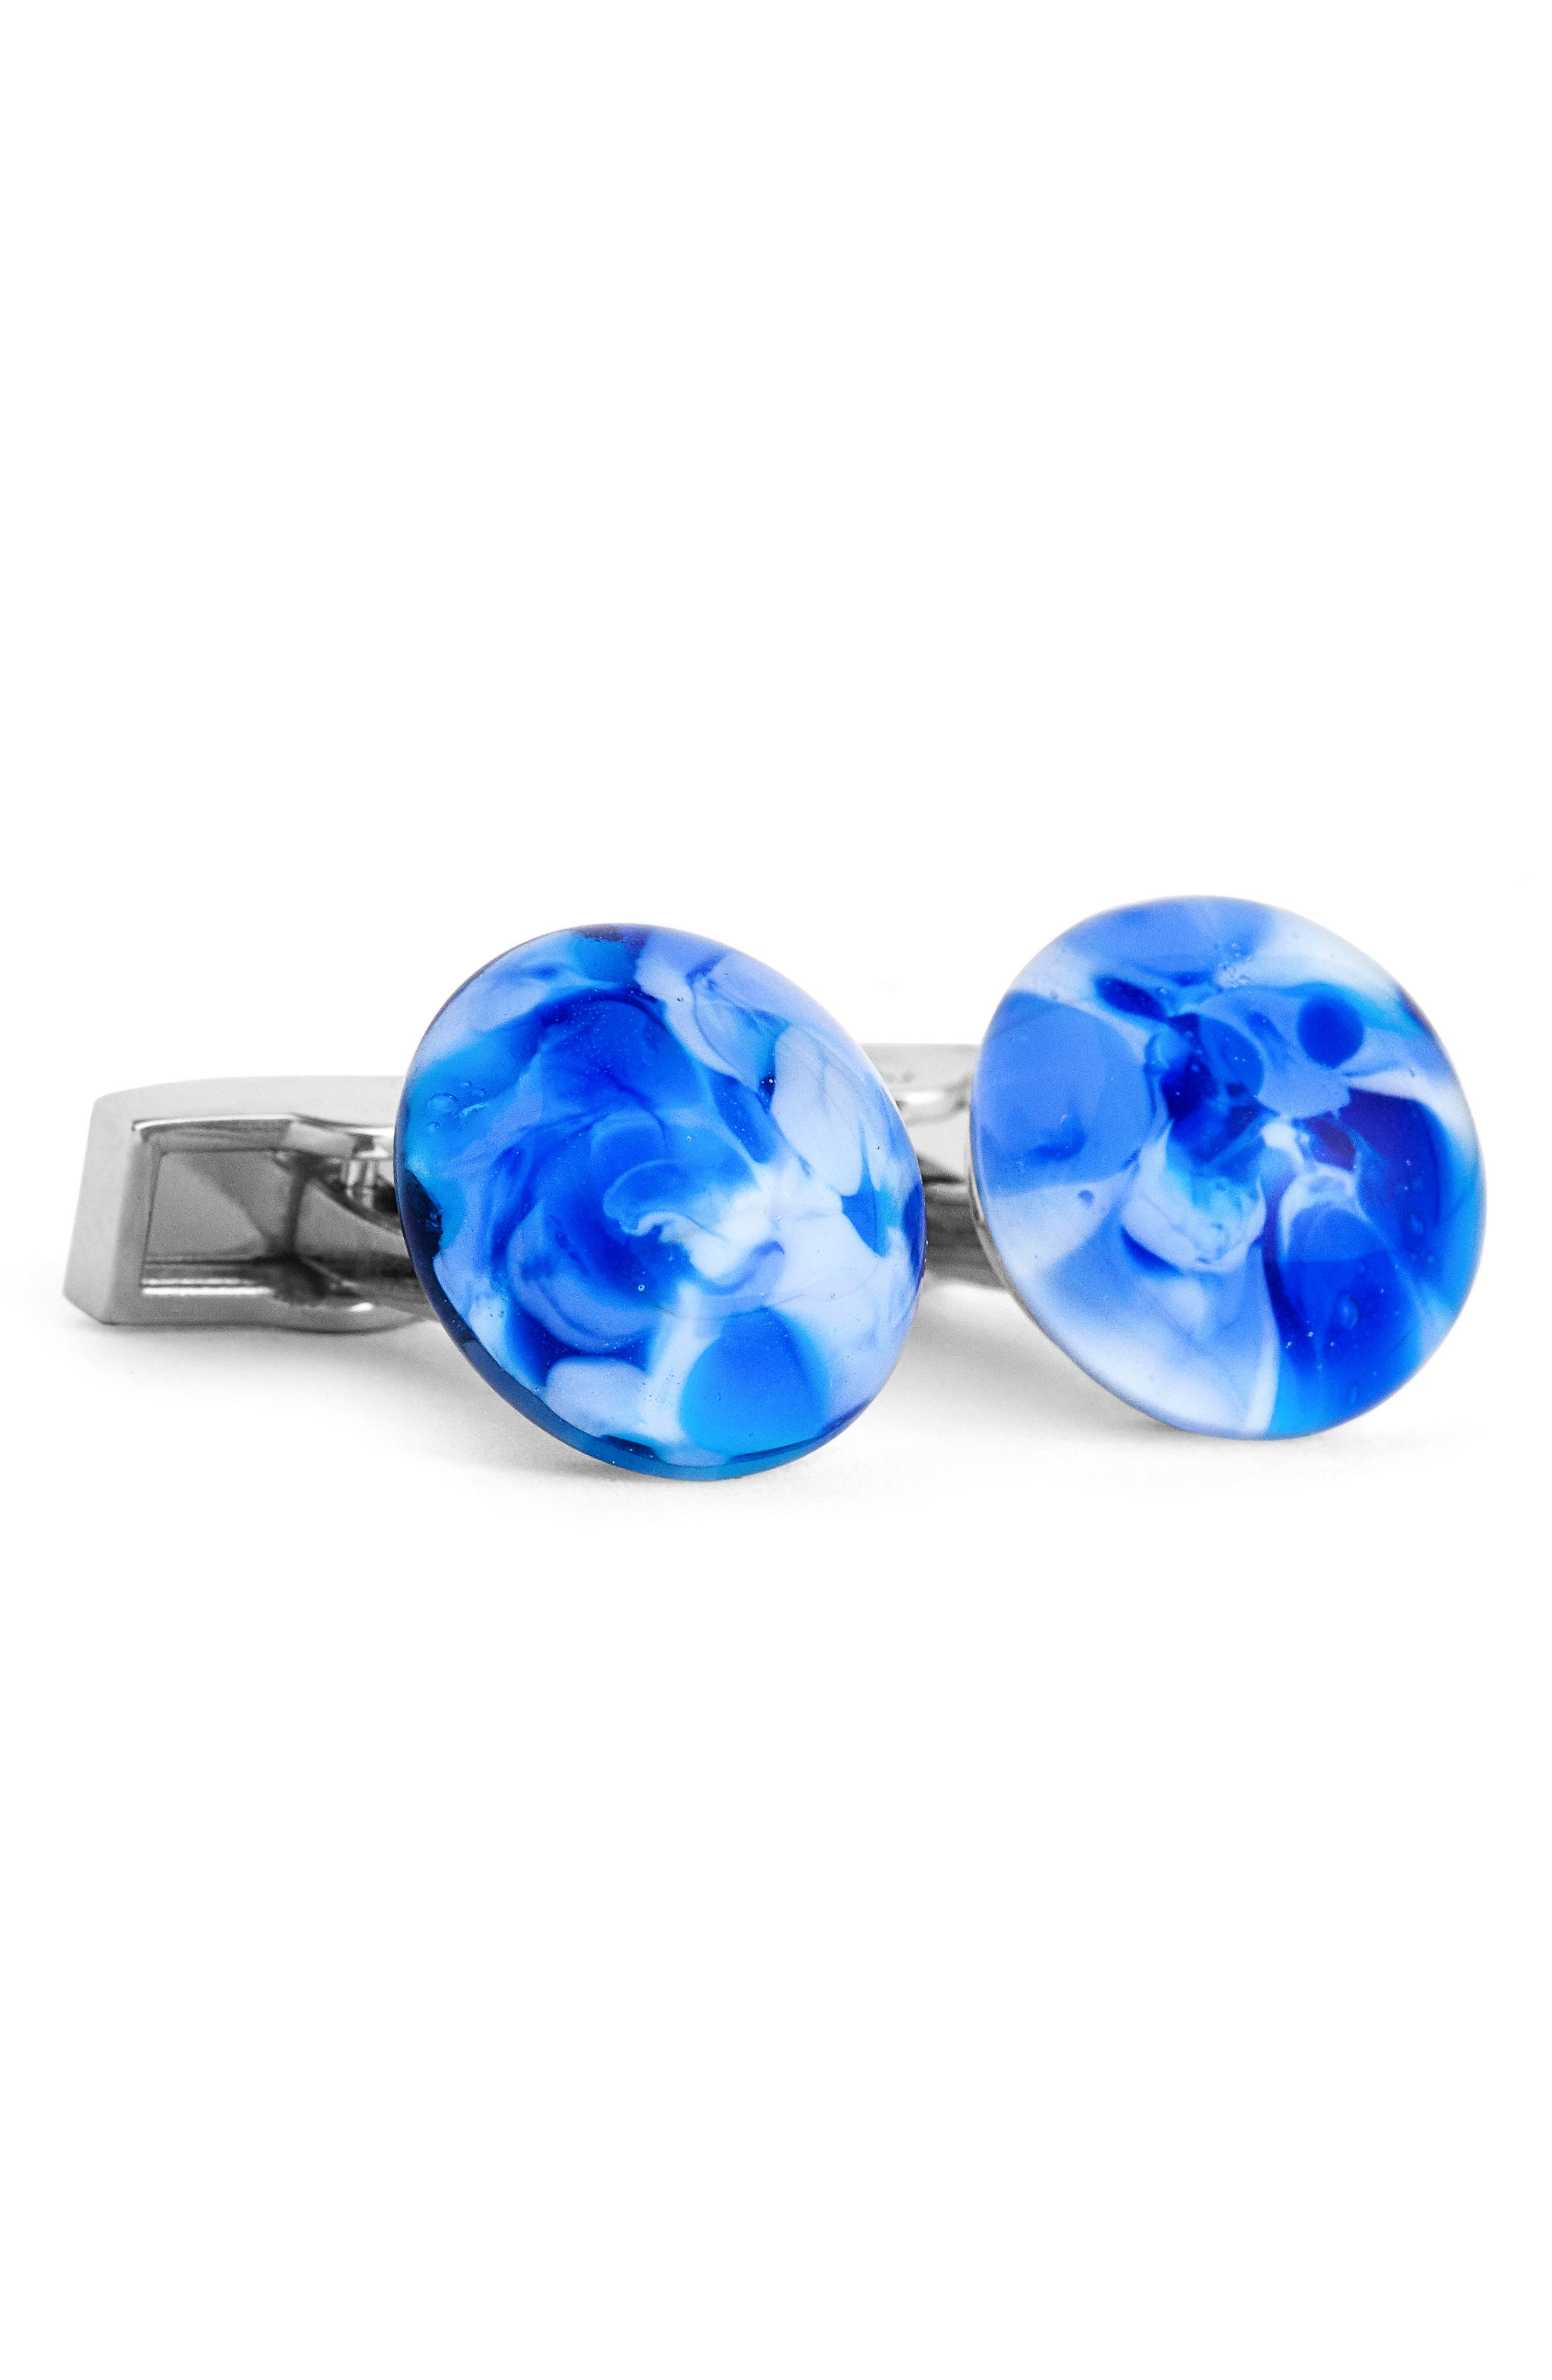 Cuff Links,                             Main thumbnail 1, color,                             BLUE